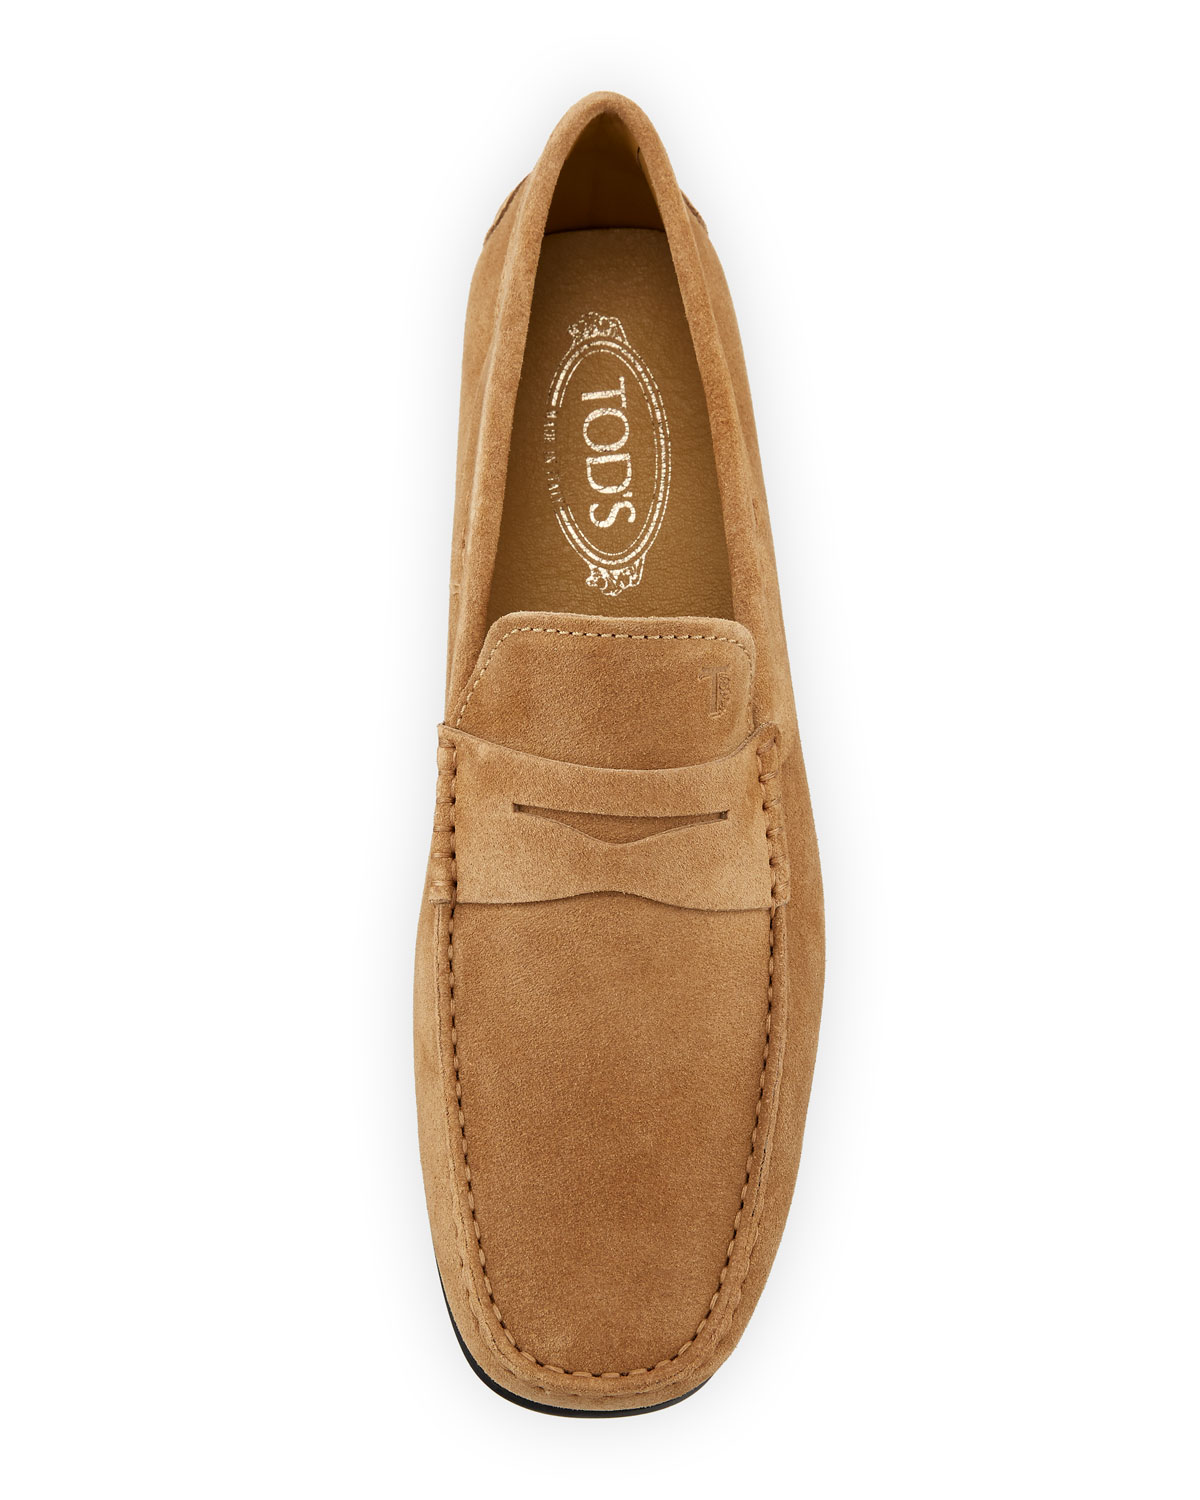 Tods City Gommini Suede Penny Loafer Tan Neiman Marcus D Island Shoes Casual Slip On England Brown